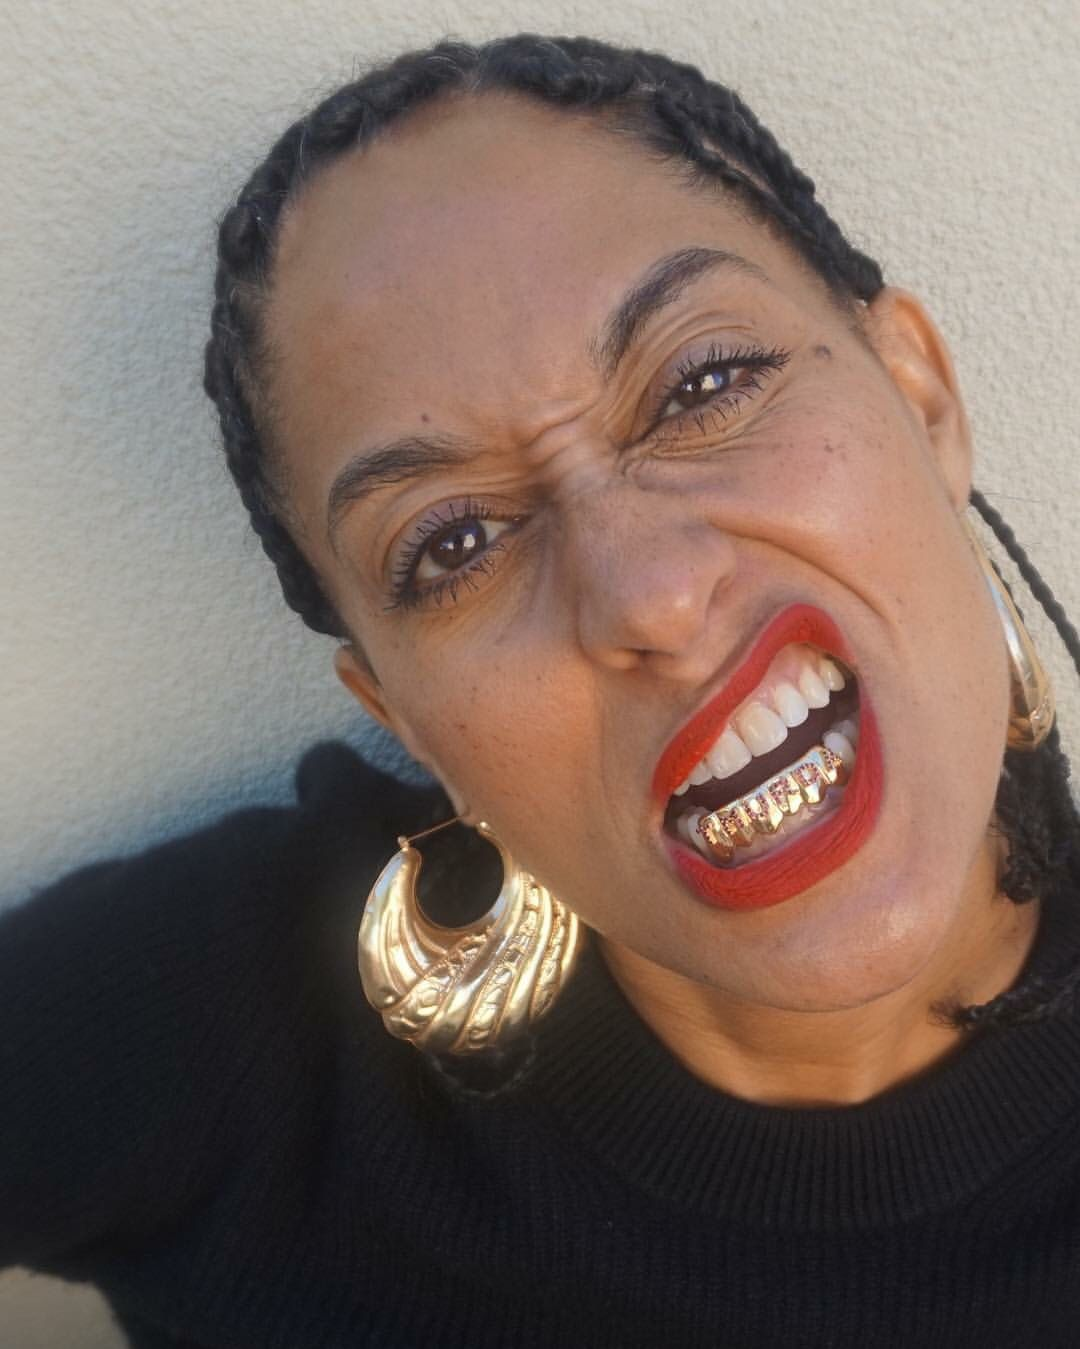 Traciee Ellis Ross giving you those gold Slugs baby!!